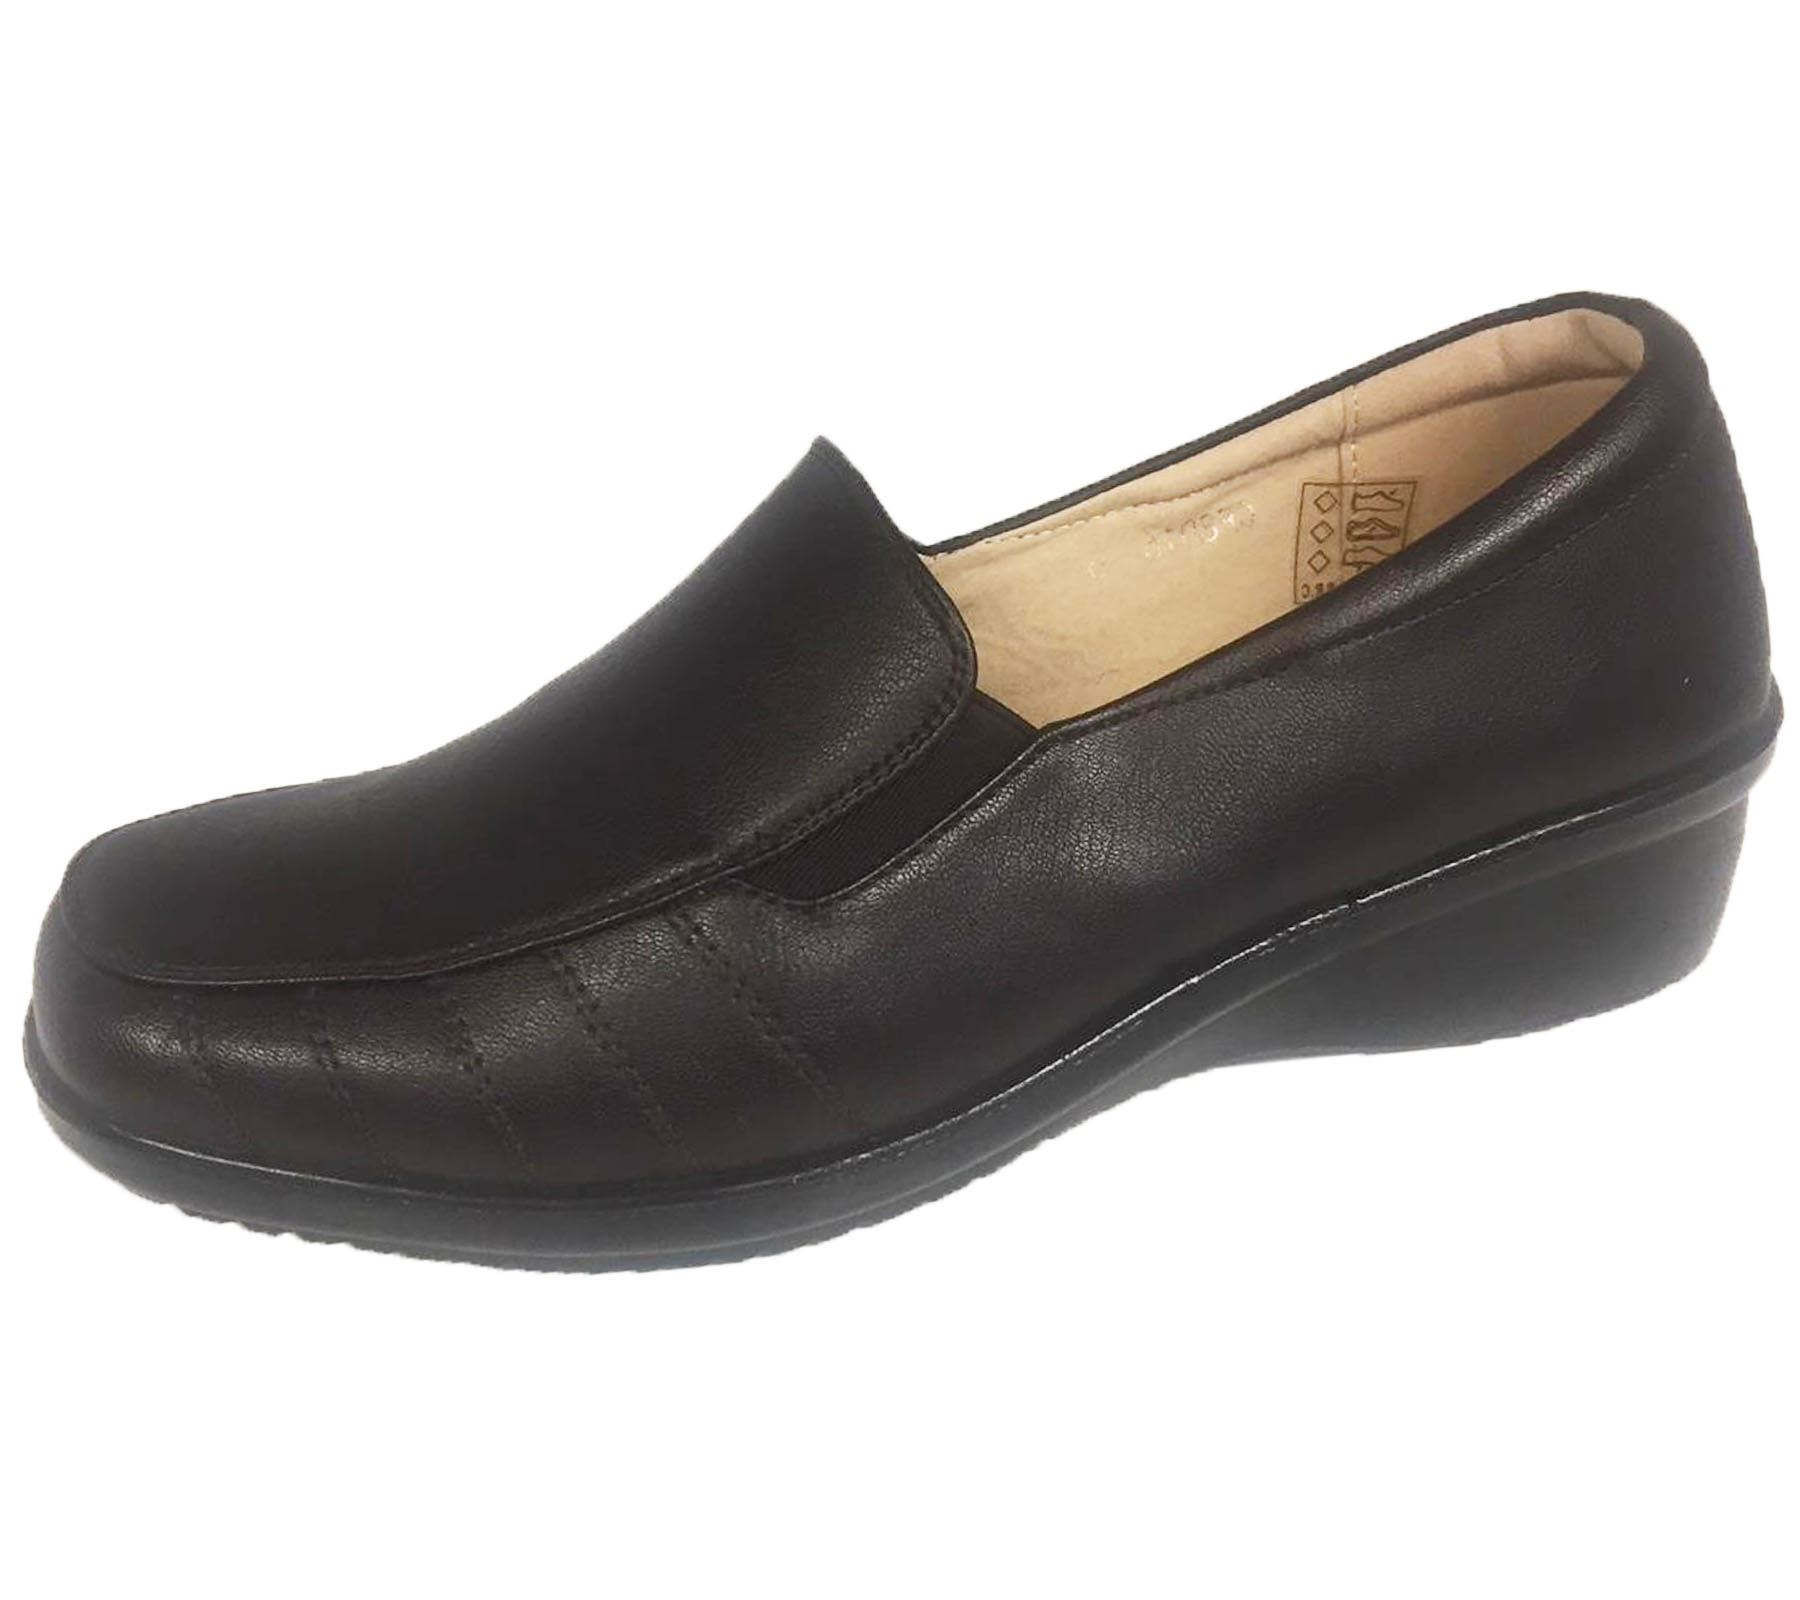 Ladies-Loafer-Moccasin-Womens-Casual-Comfort-Walk-Pumps-Slip-On-Shoes thumbnail 12